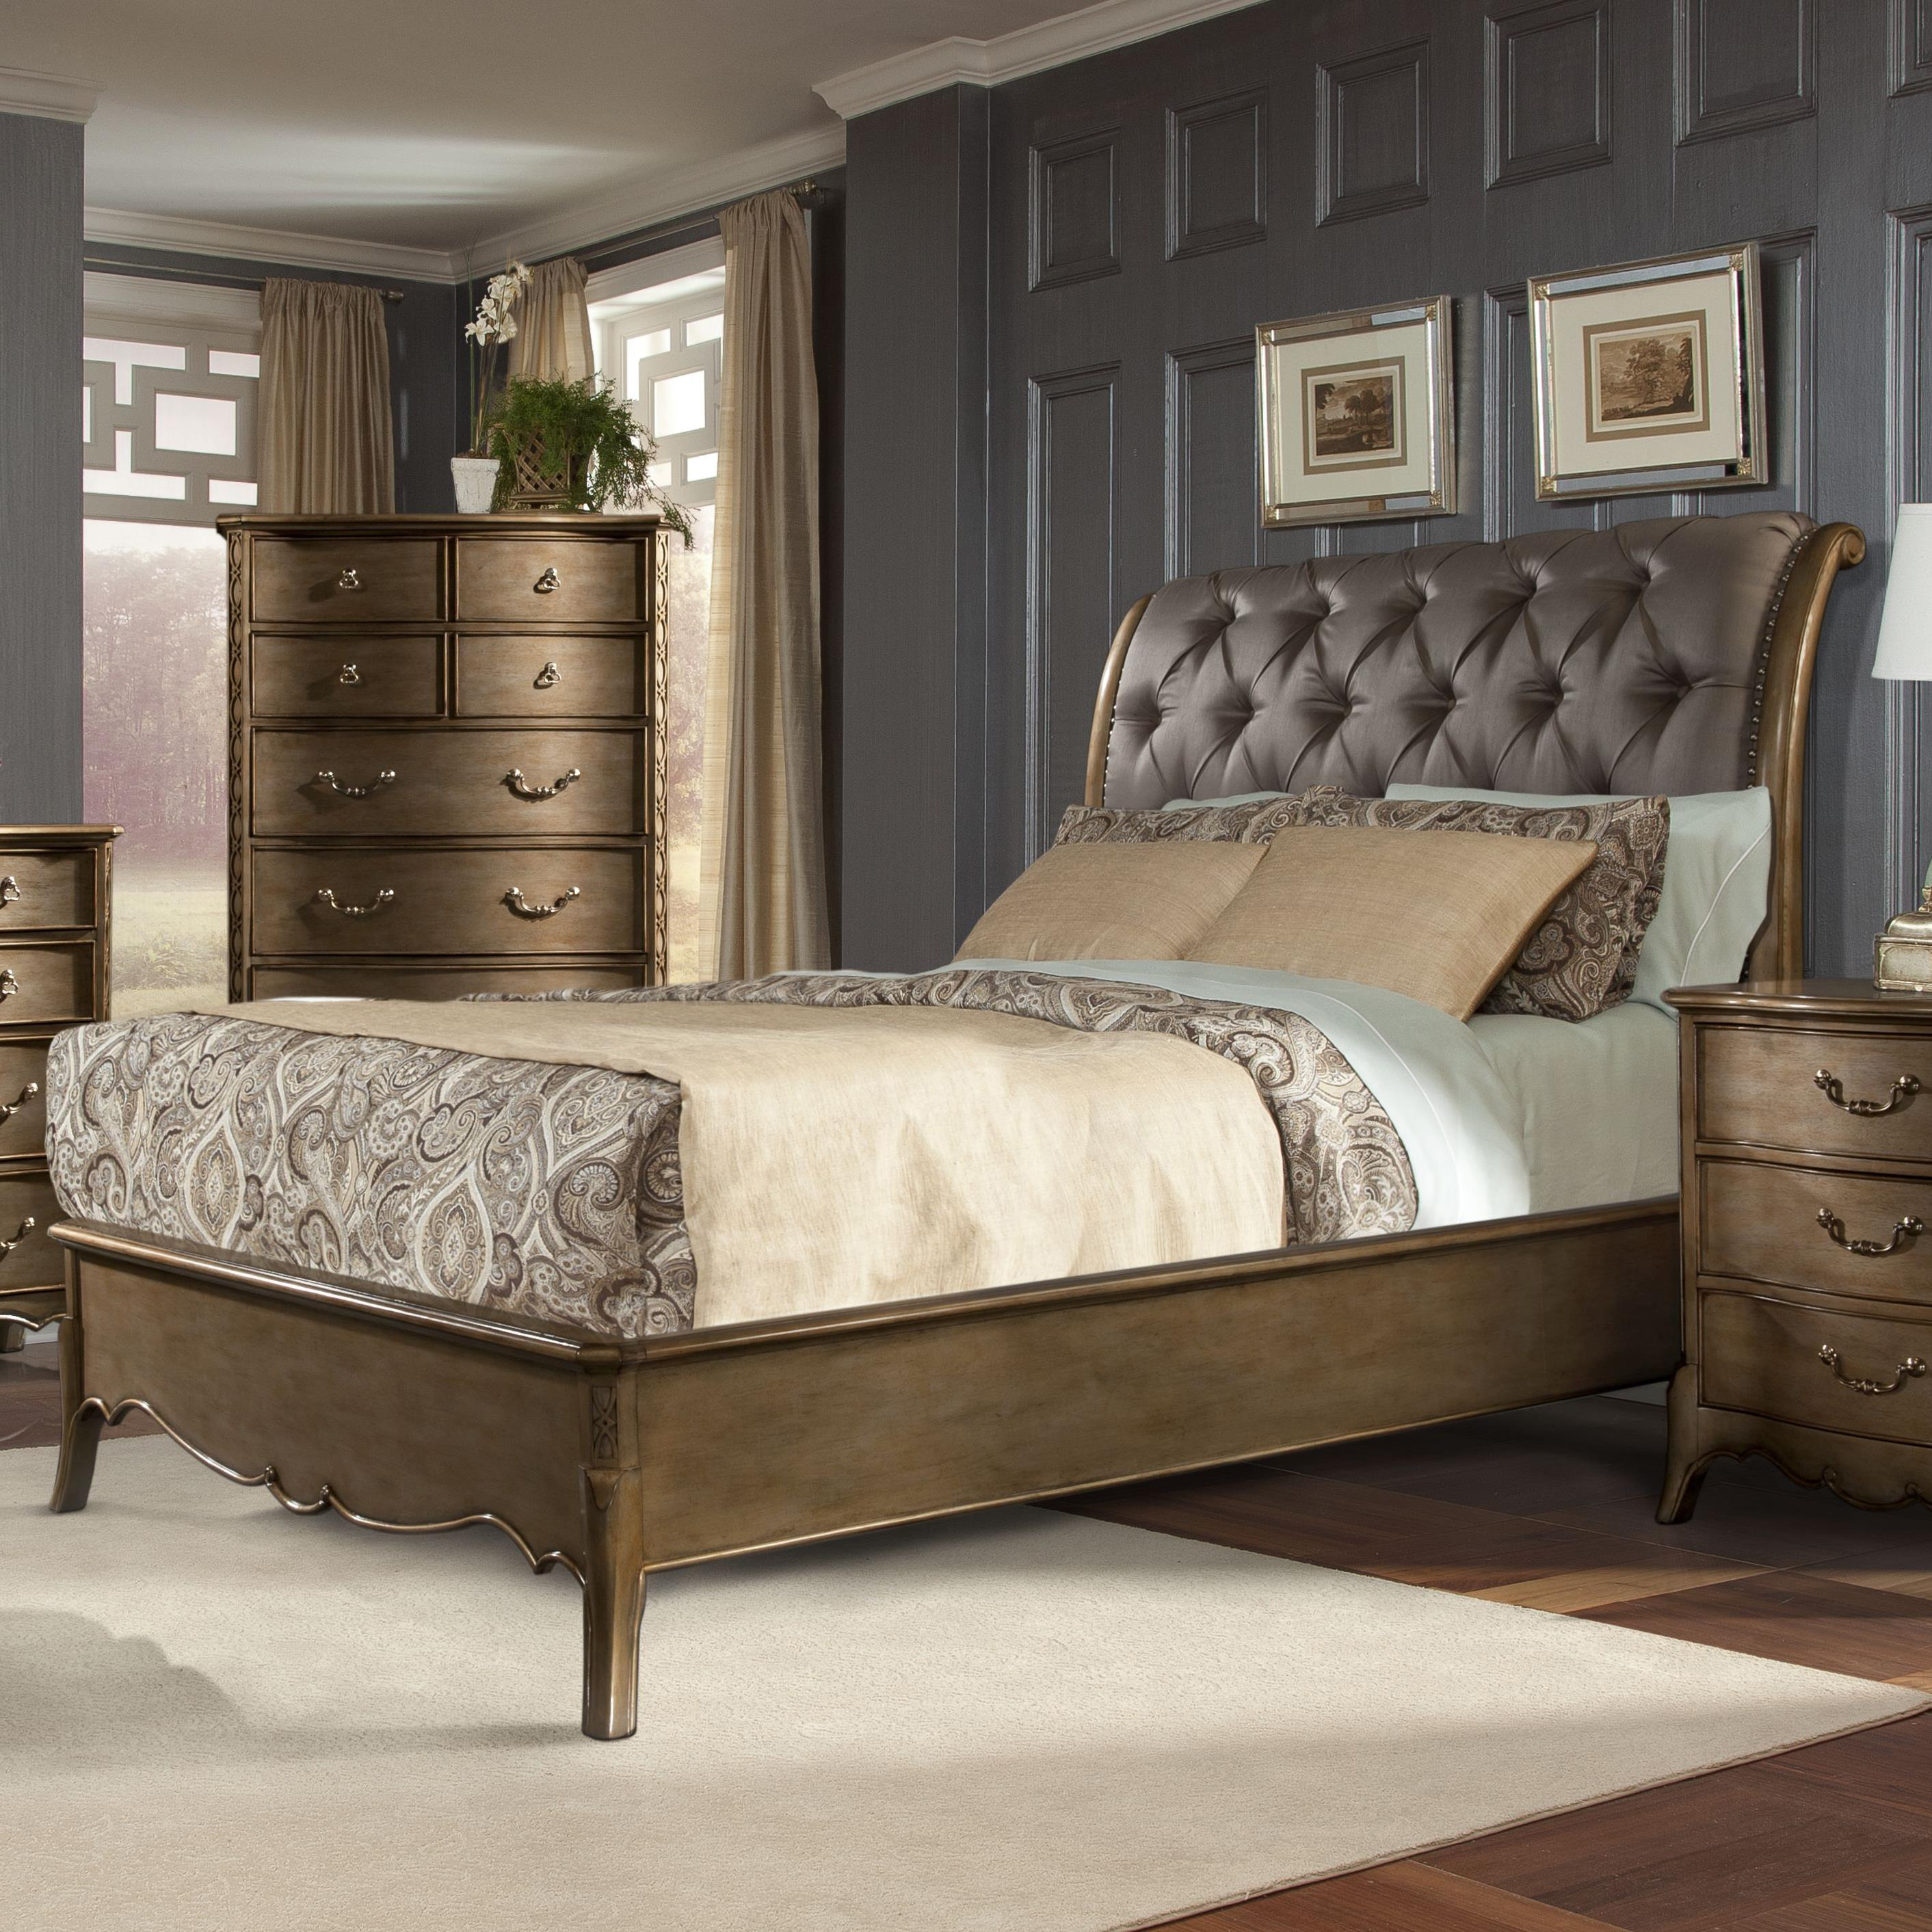 Homelegance Chambord King Sleigh Bed - Item Number: 1828K-1+2+3EK